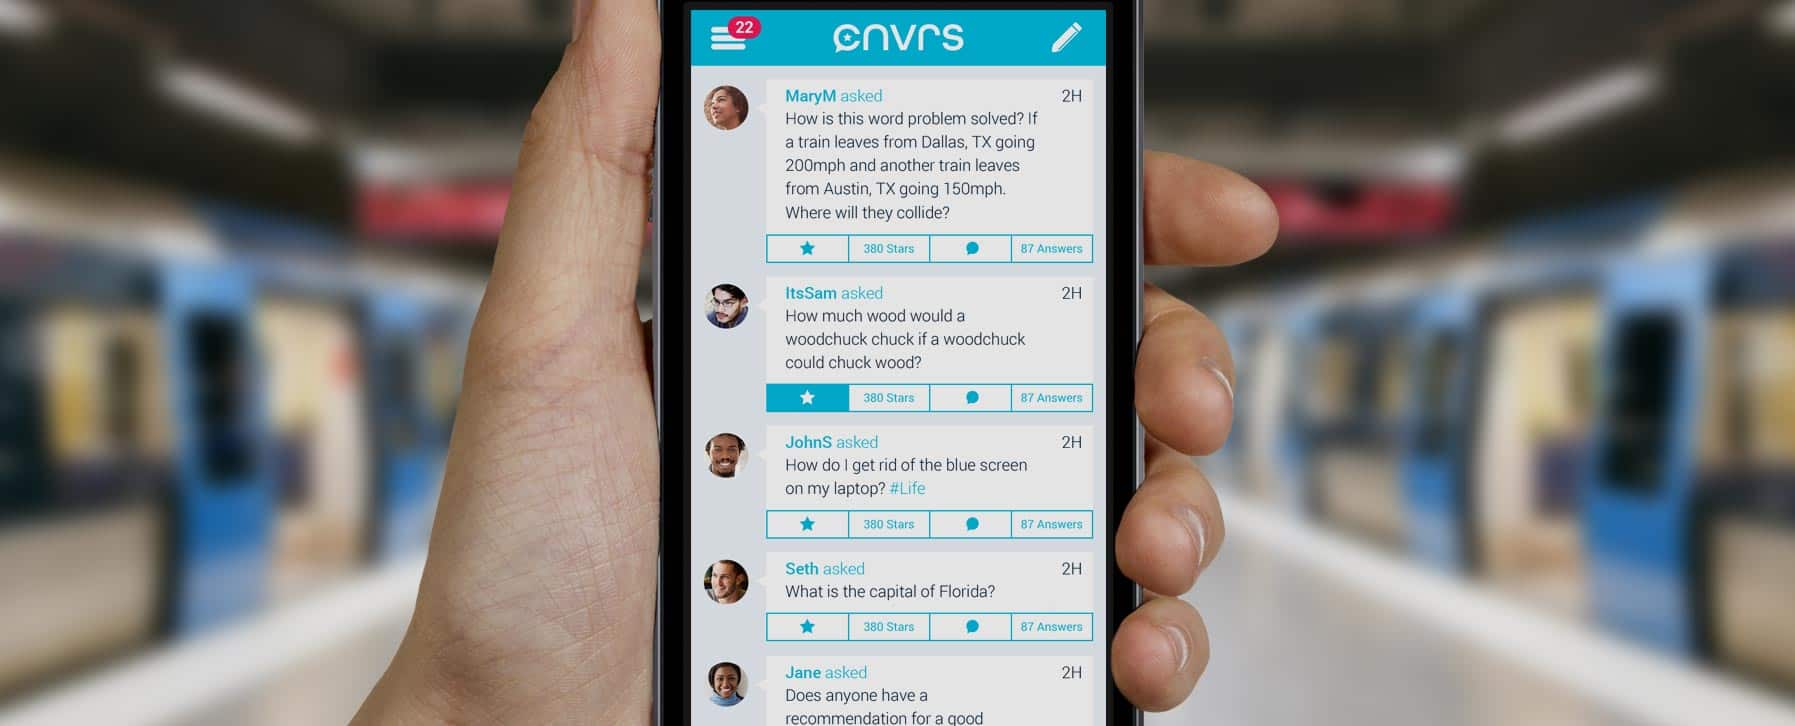 CNVRS: The New Mobile Application's Design Process